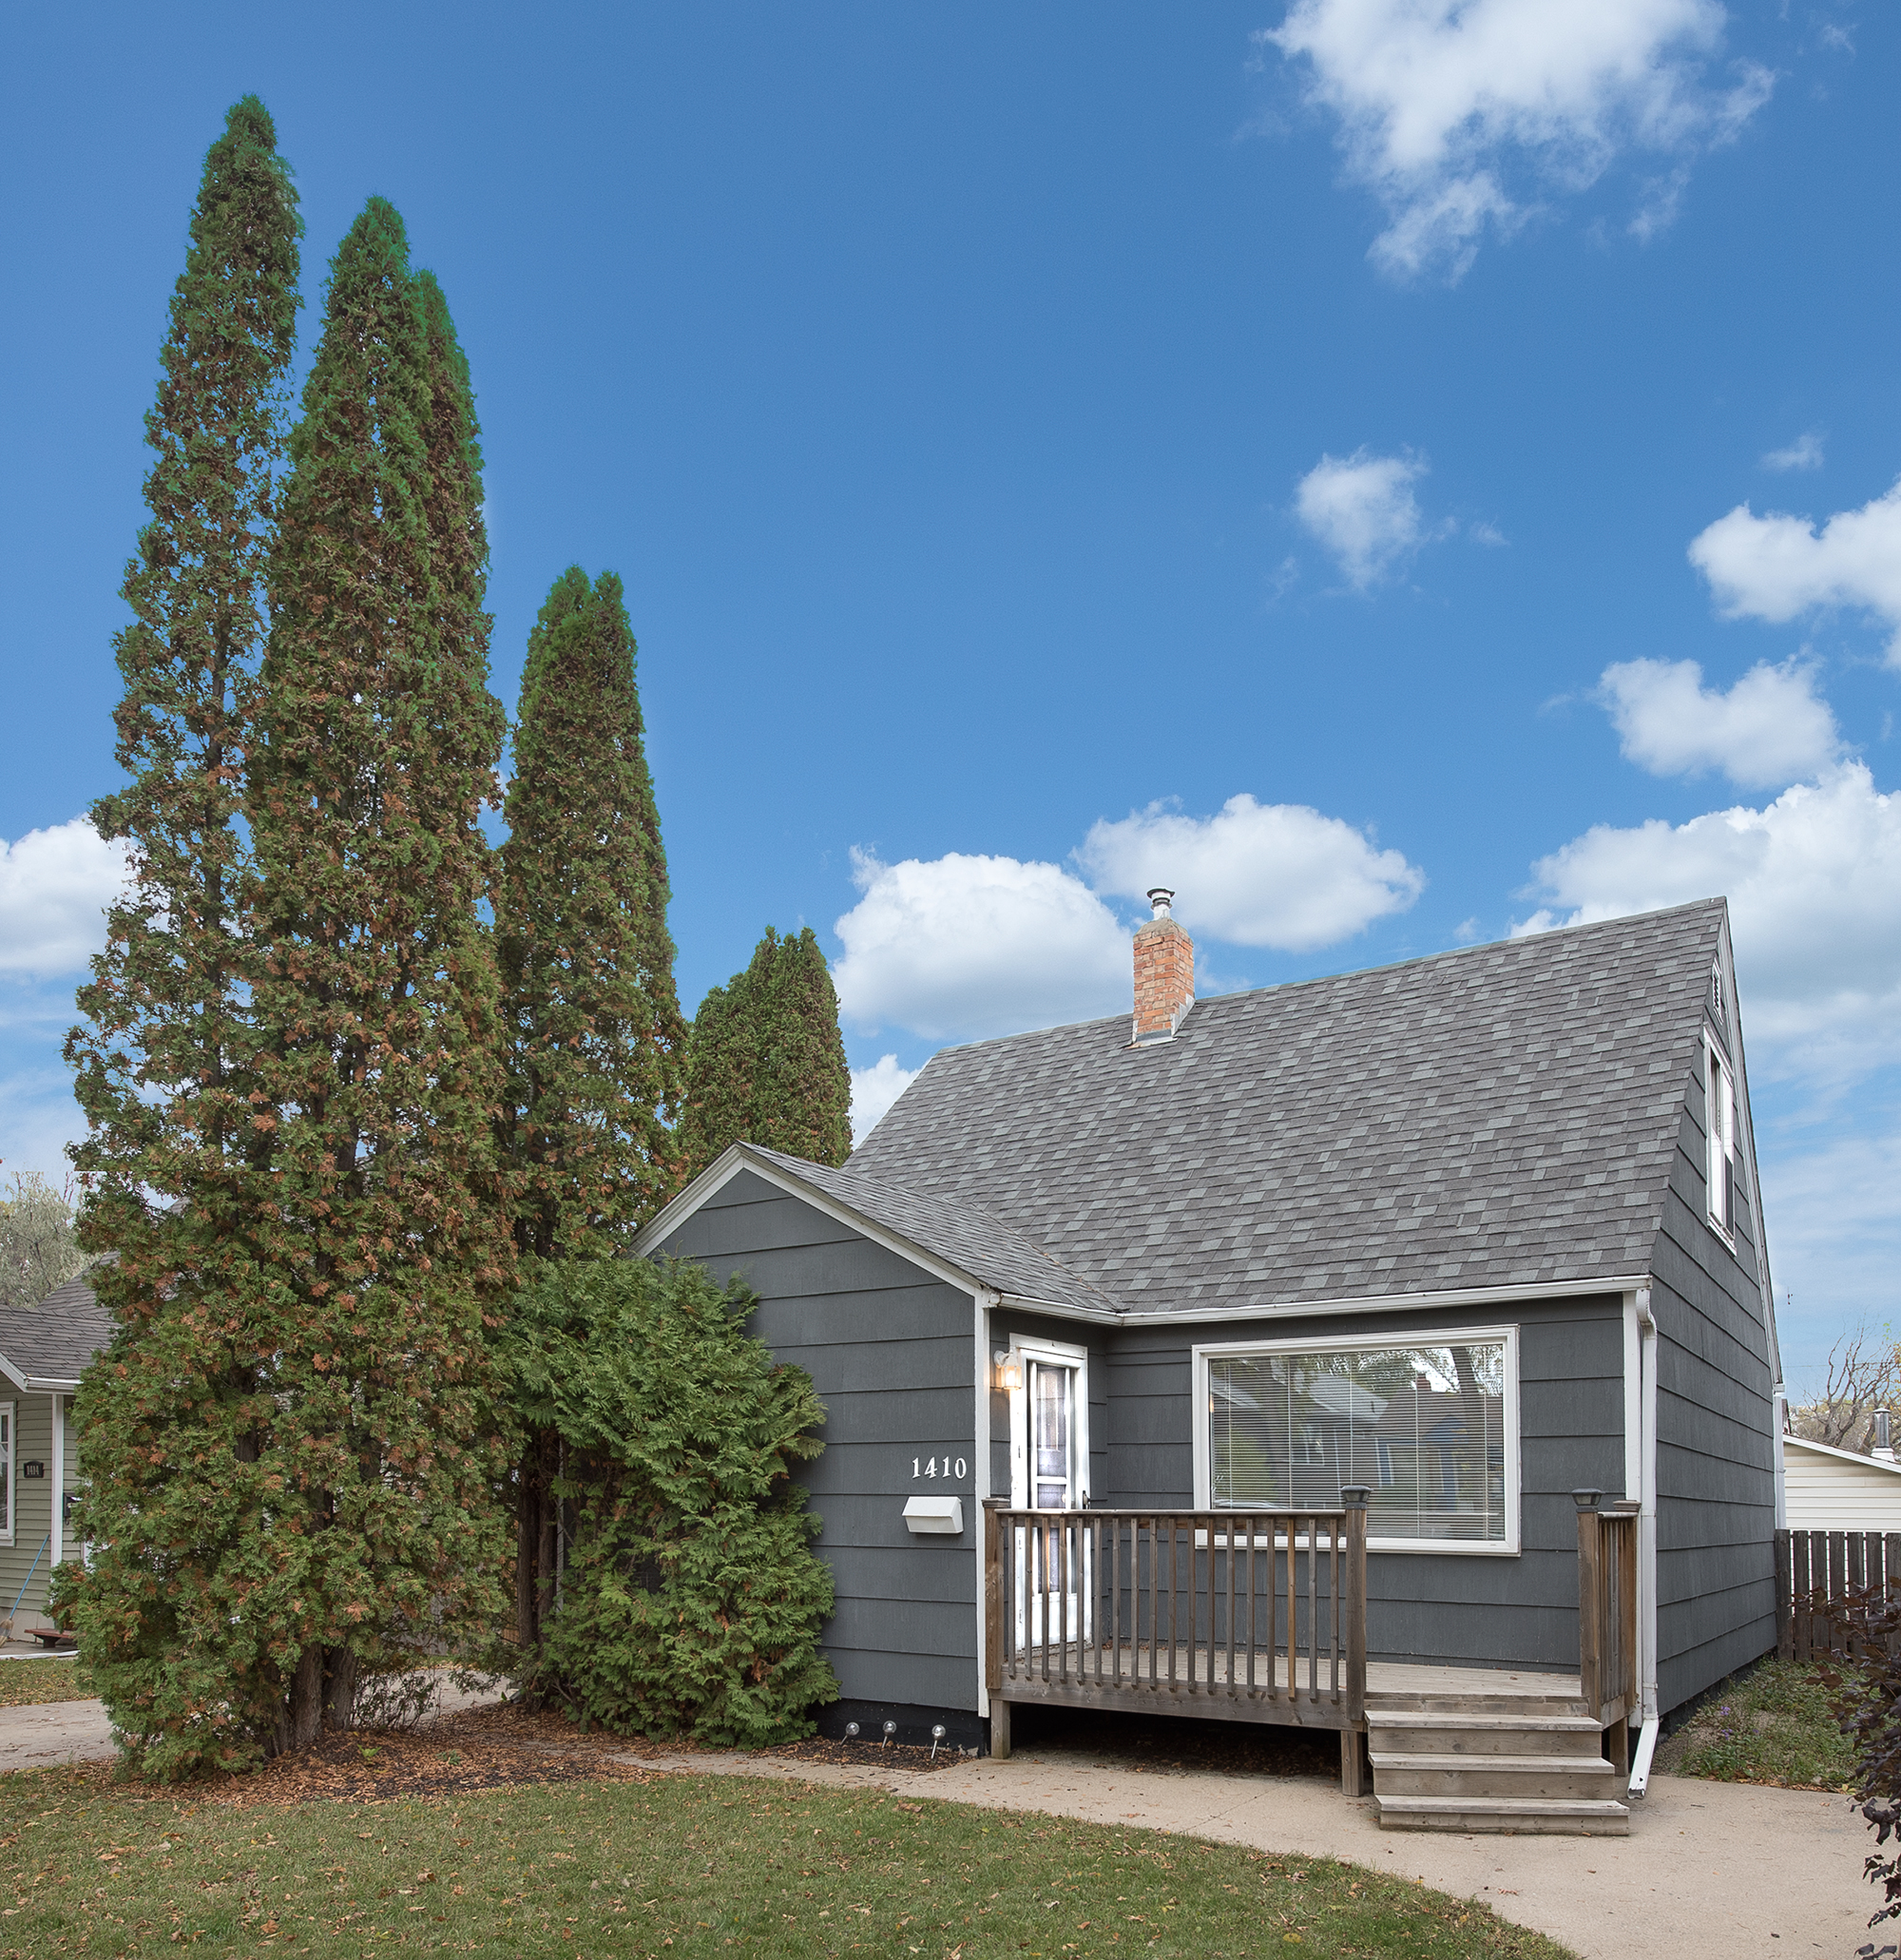 1410 10th Ave North, Saskatoon SK S7K 3A6